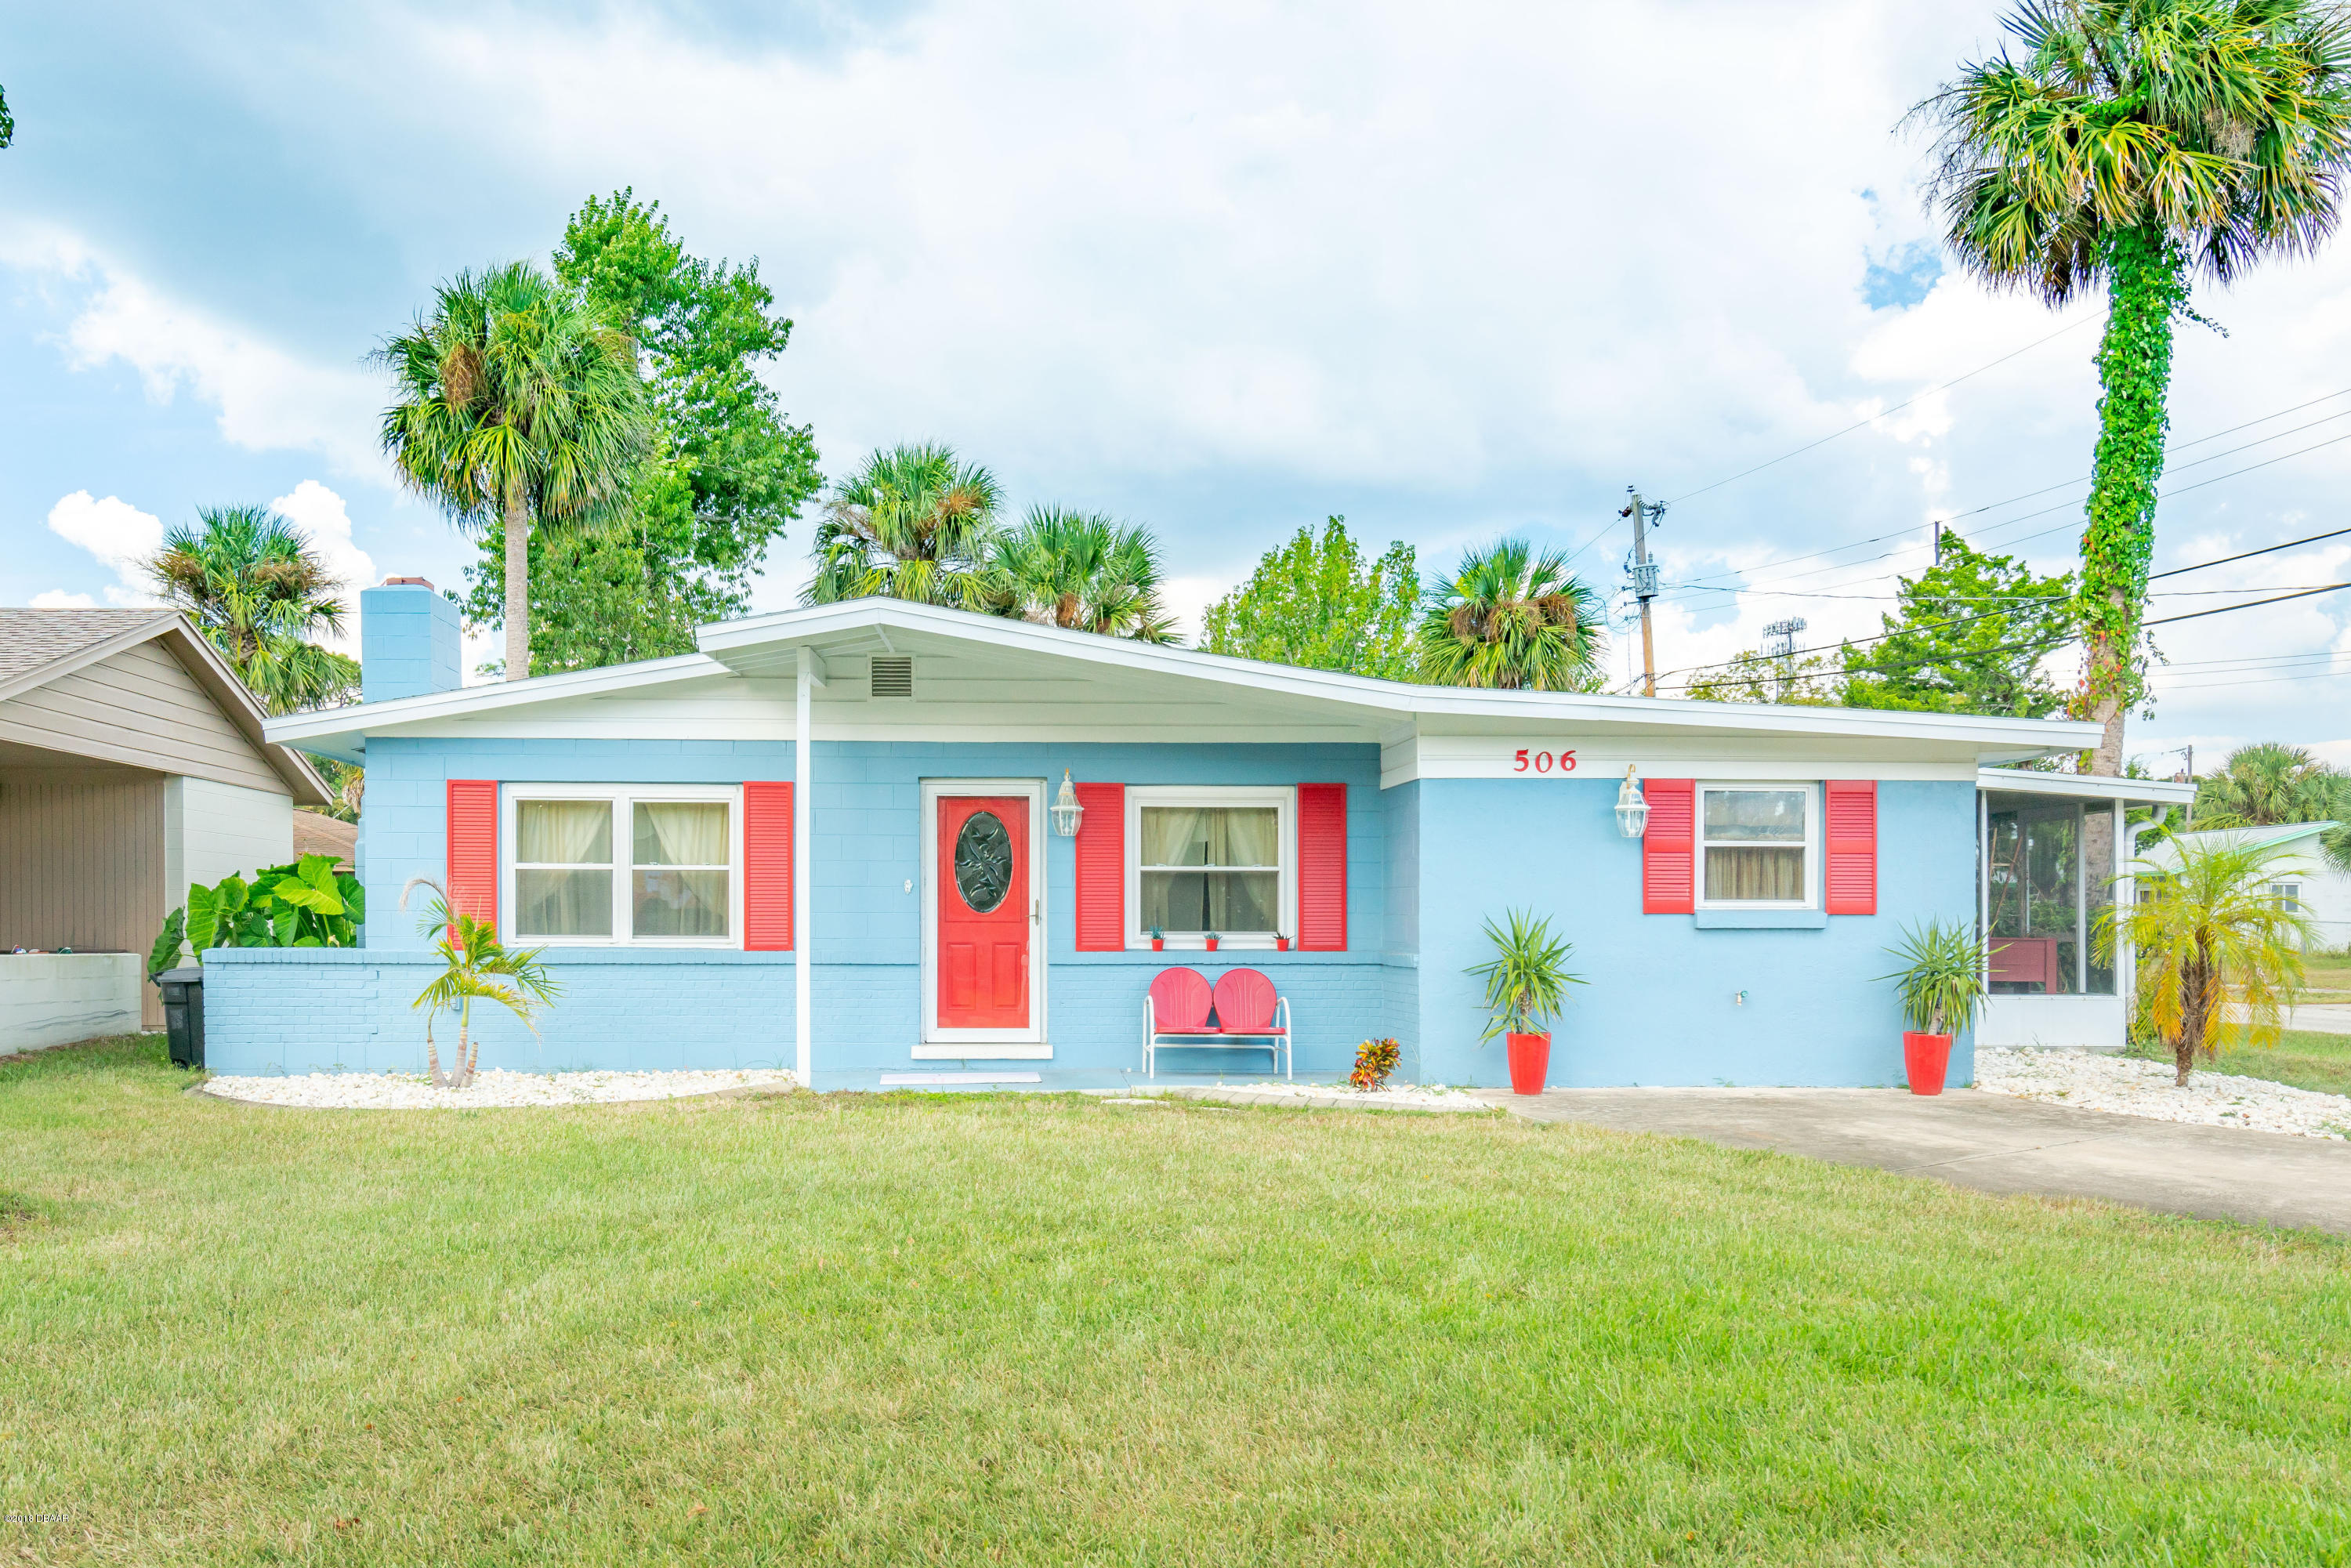 Photo of 506 Katherine Street, South Daytona, FL 32119